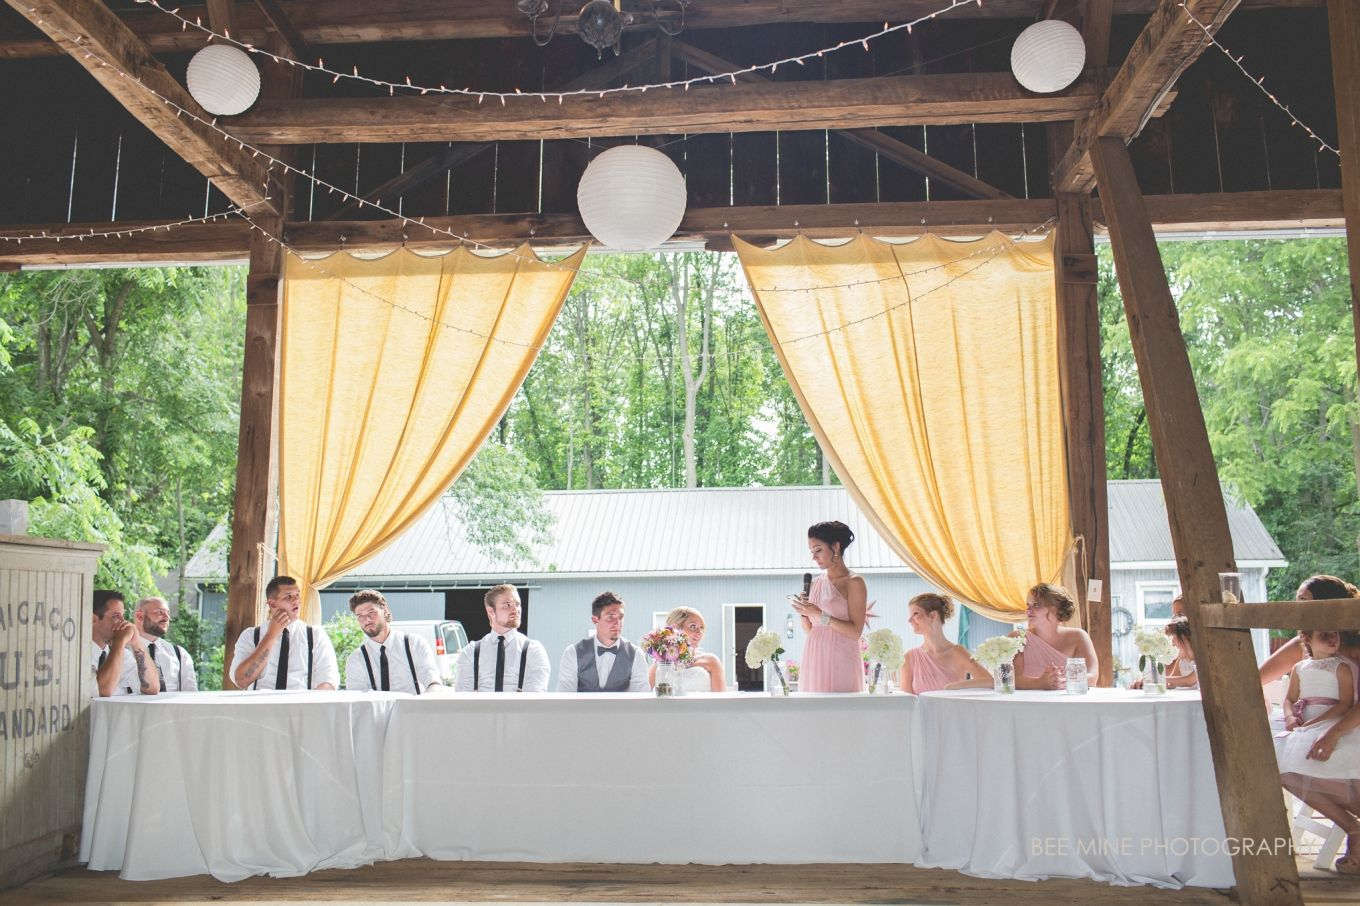 outdoor weddings near akron ohio%0A    best weddings    venues images on Pinterest   Wedding venues  Canton ohio  and Country weddings